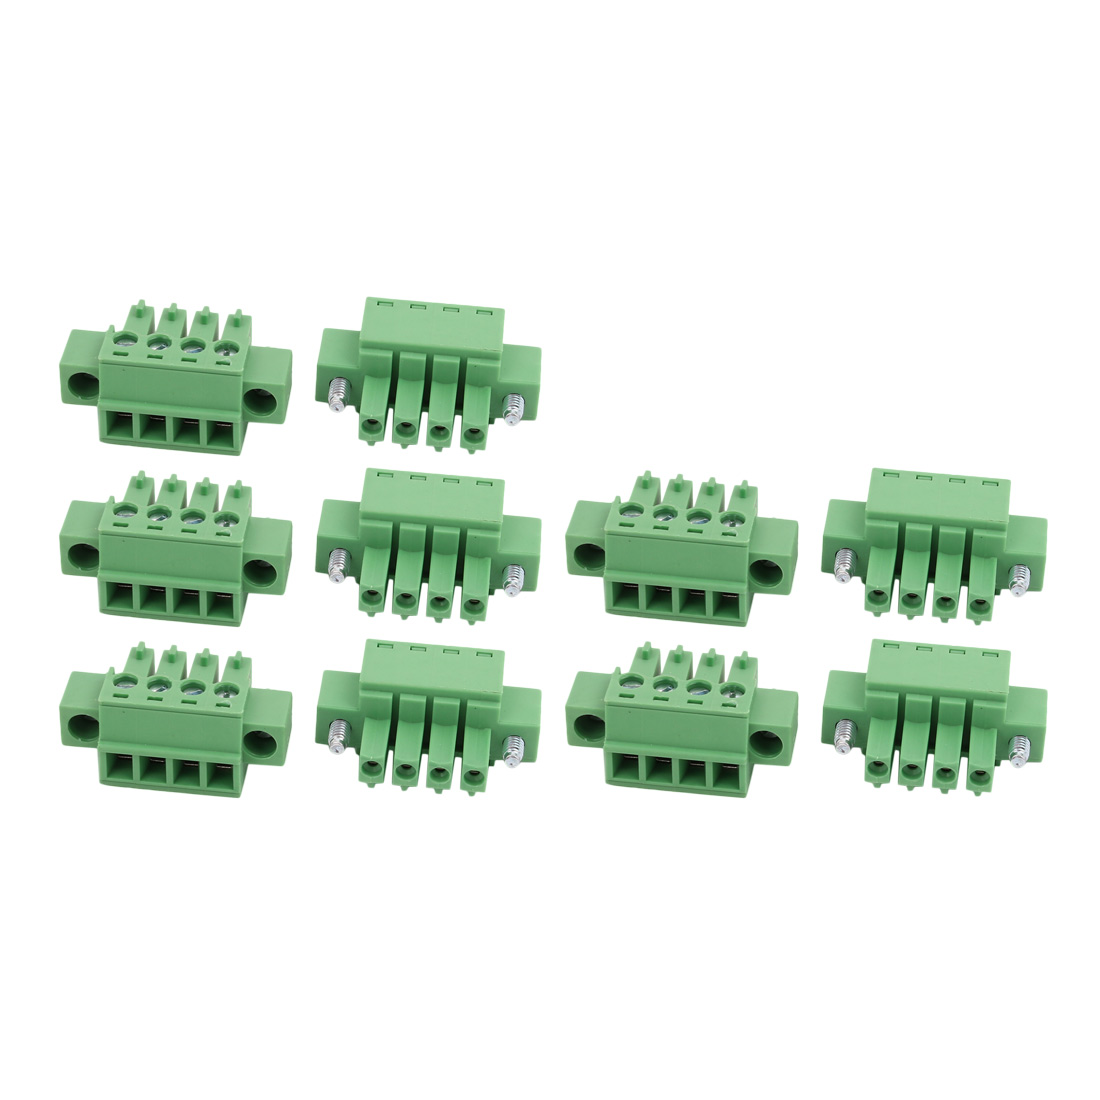 10Pcs LC1M AC300V 8A 3.81mm Pitch 4P PCB Terminal Block Wire Connection